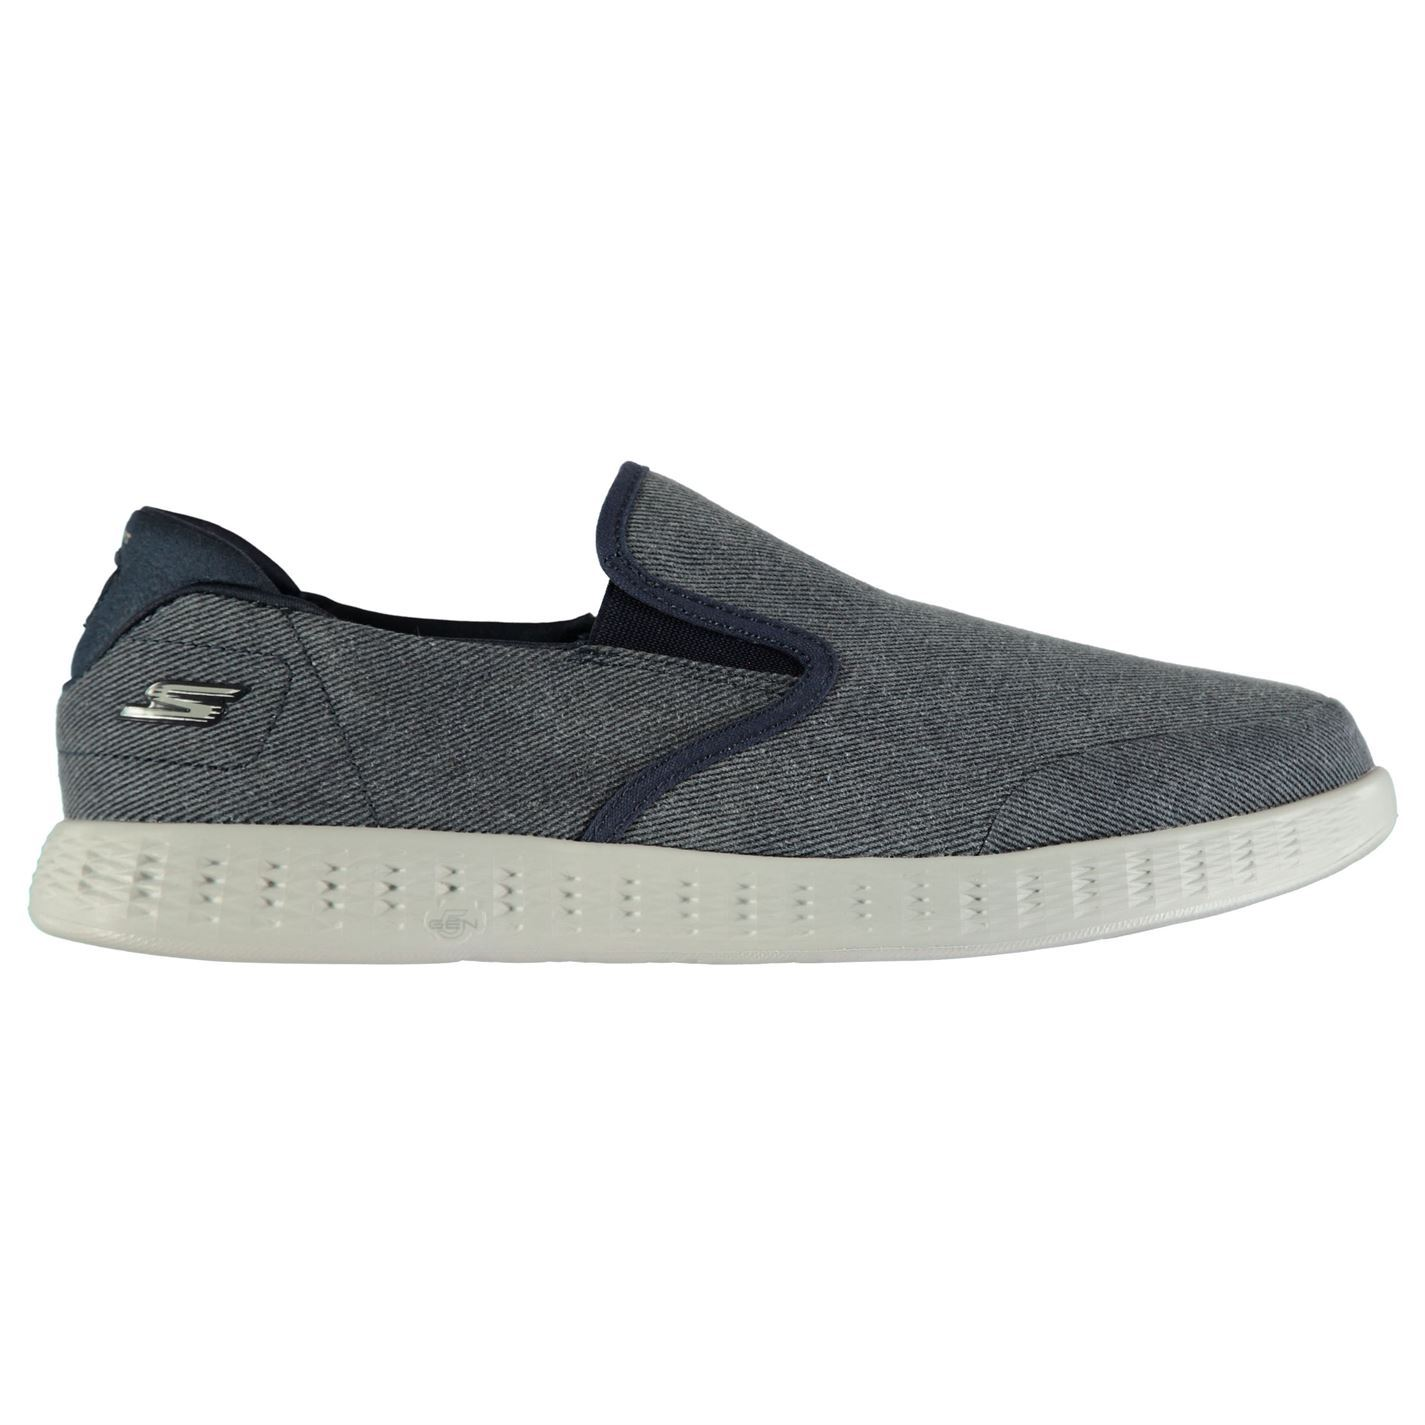 Skechers On  the Go Glide Schuhes  On Uomo Gents Slip Sneakers Lightweight Canvas fd2711